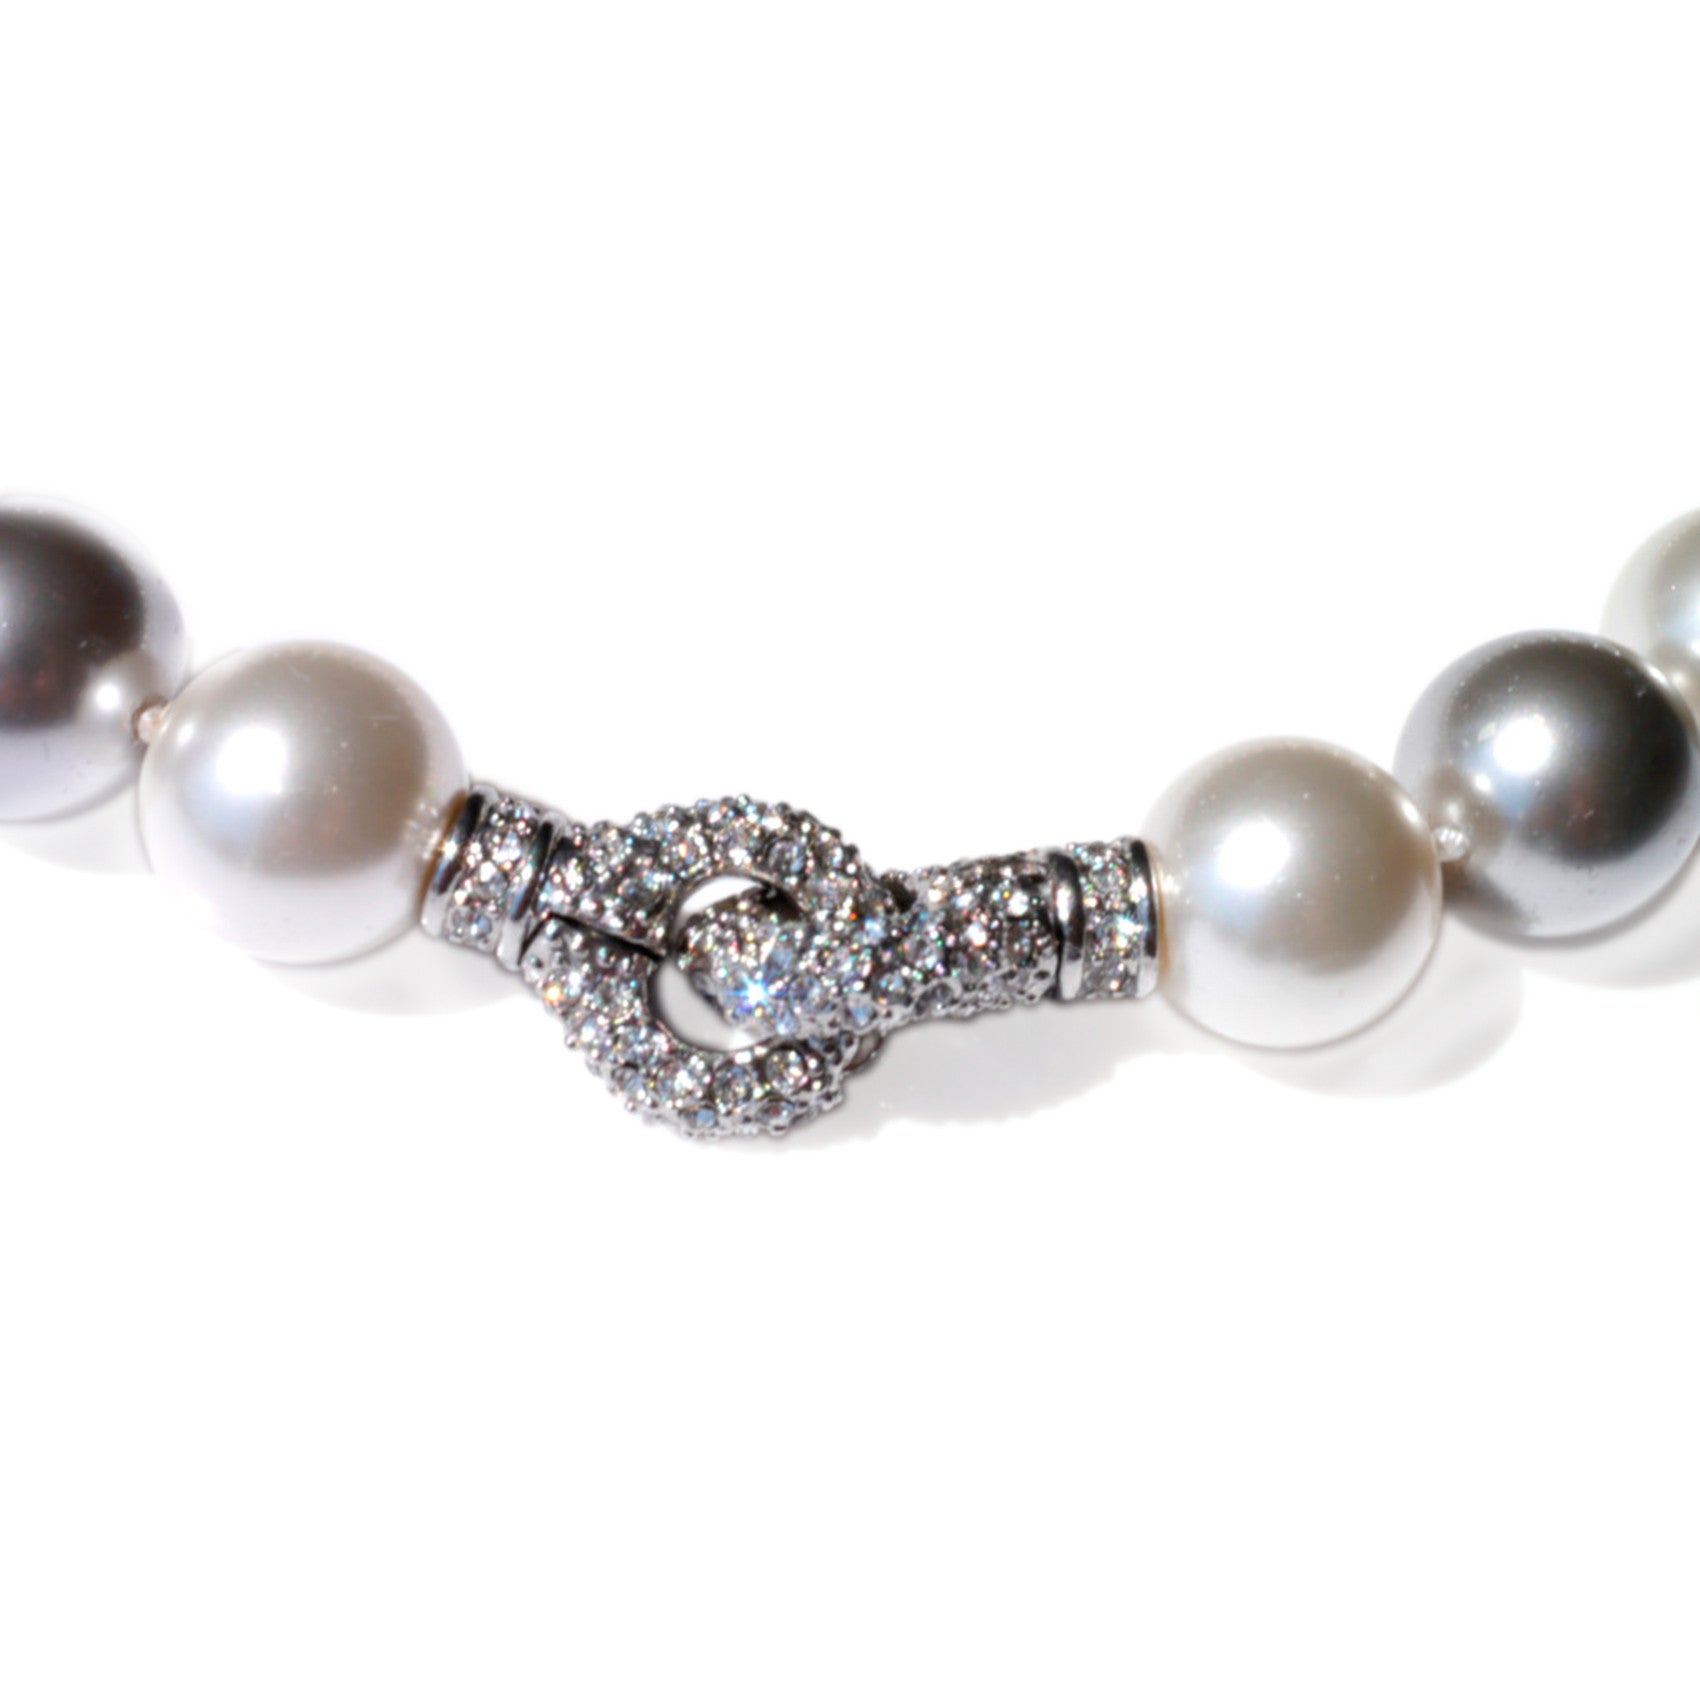 Oversized Pearl Necklace Satin White & Silver Grey